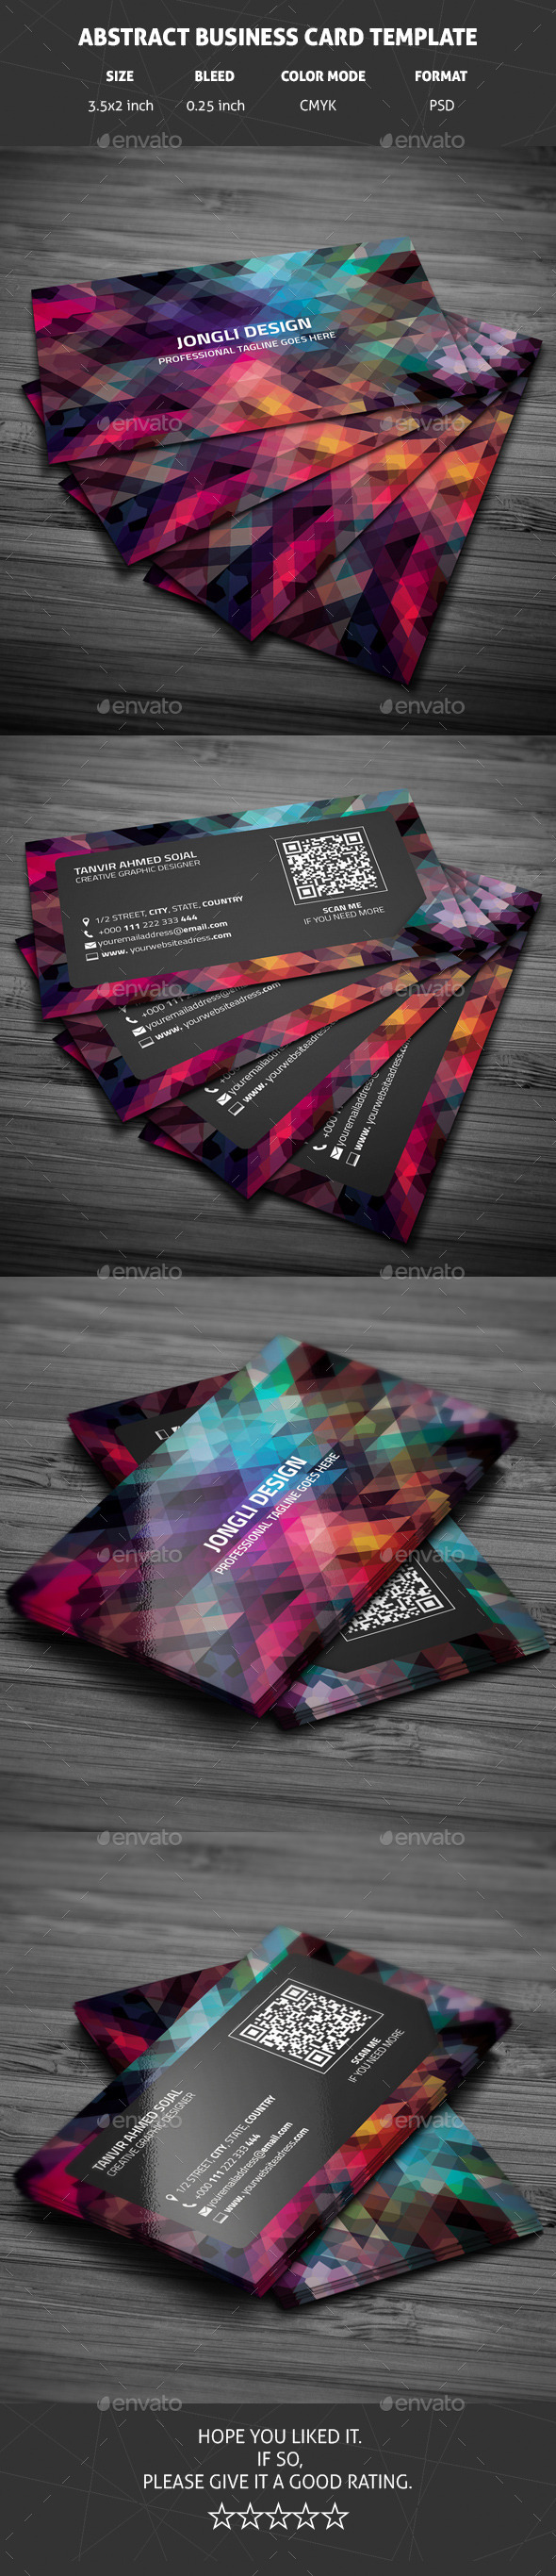 GraphicRiver Abstract Business Card Template 10681062